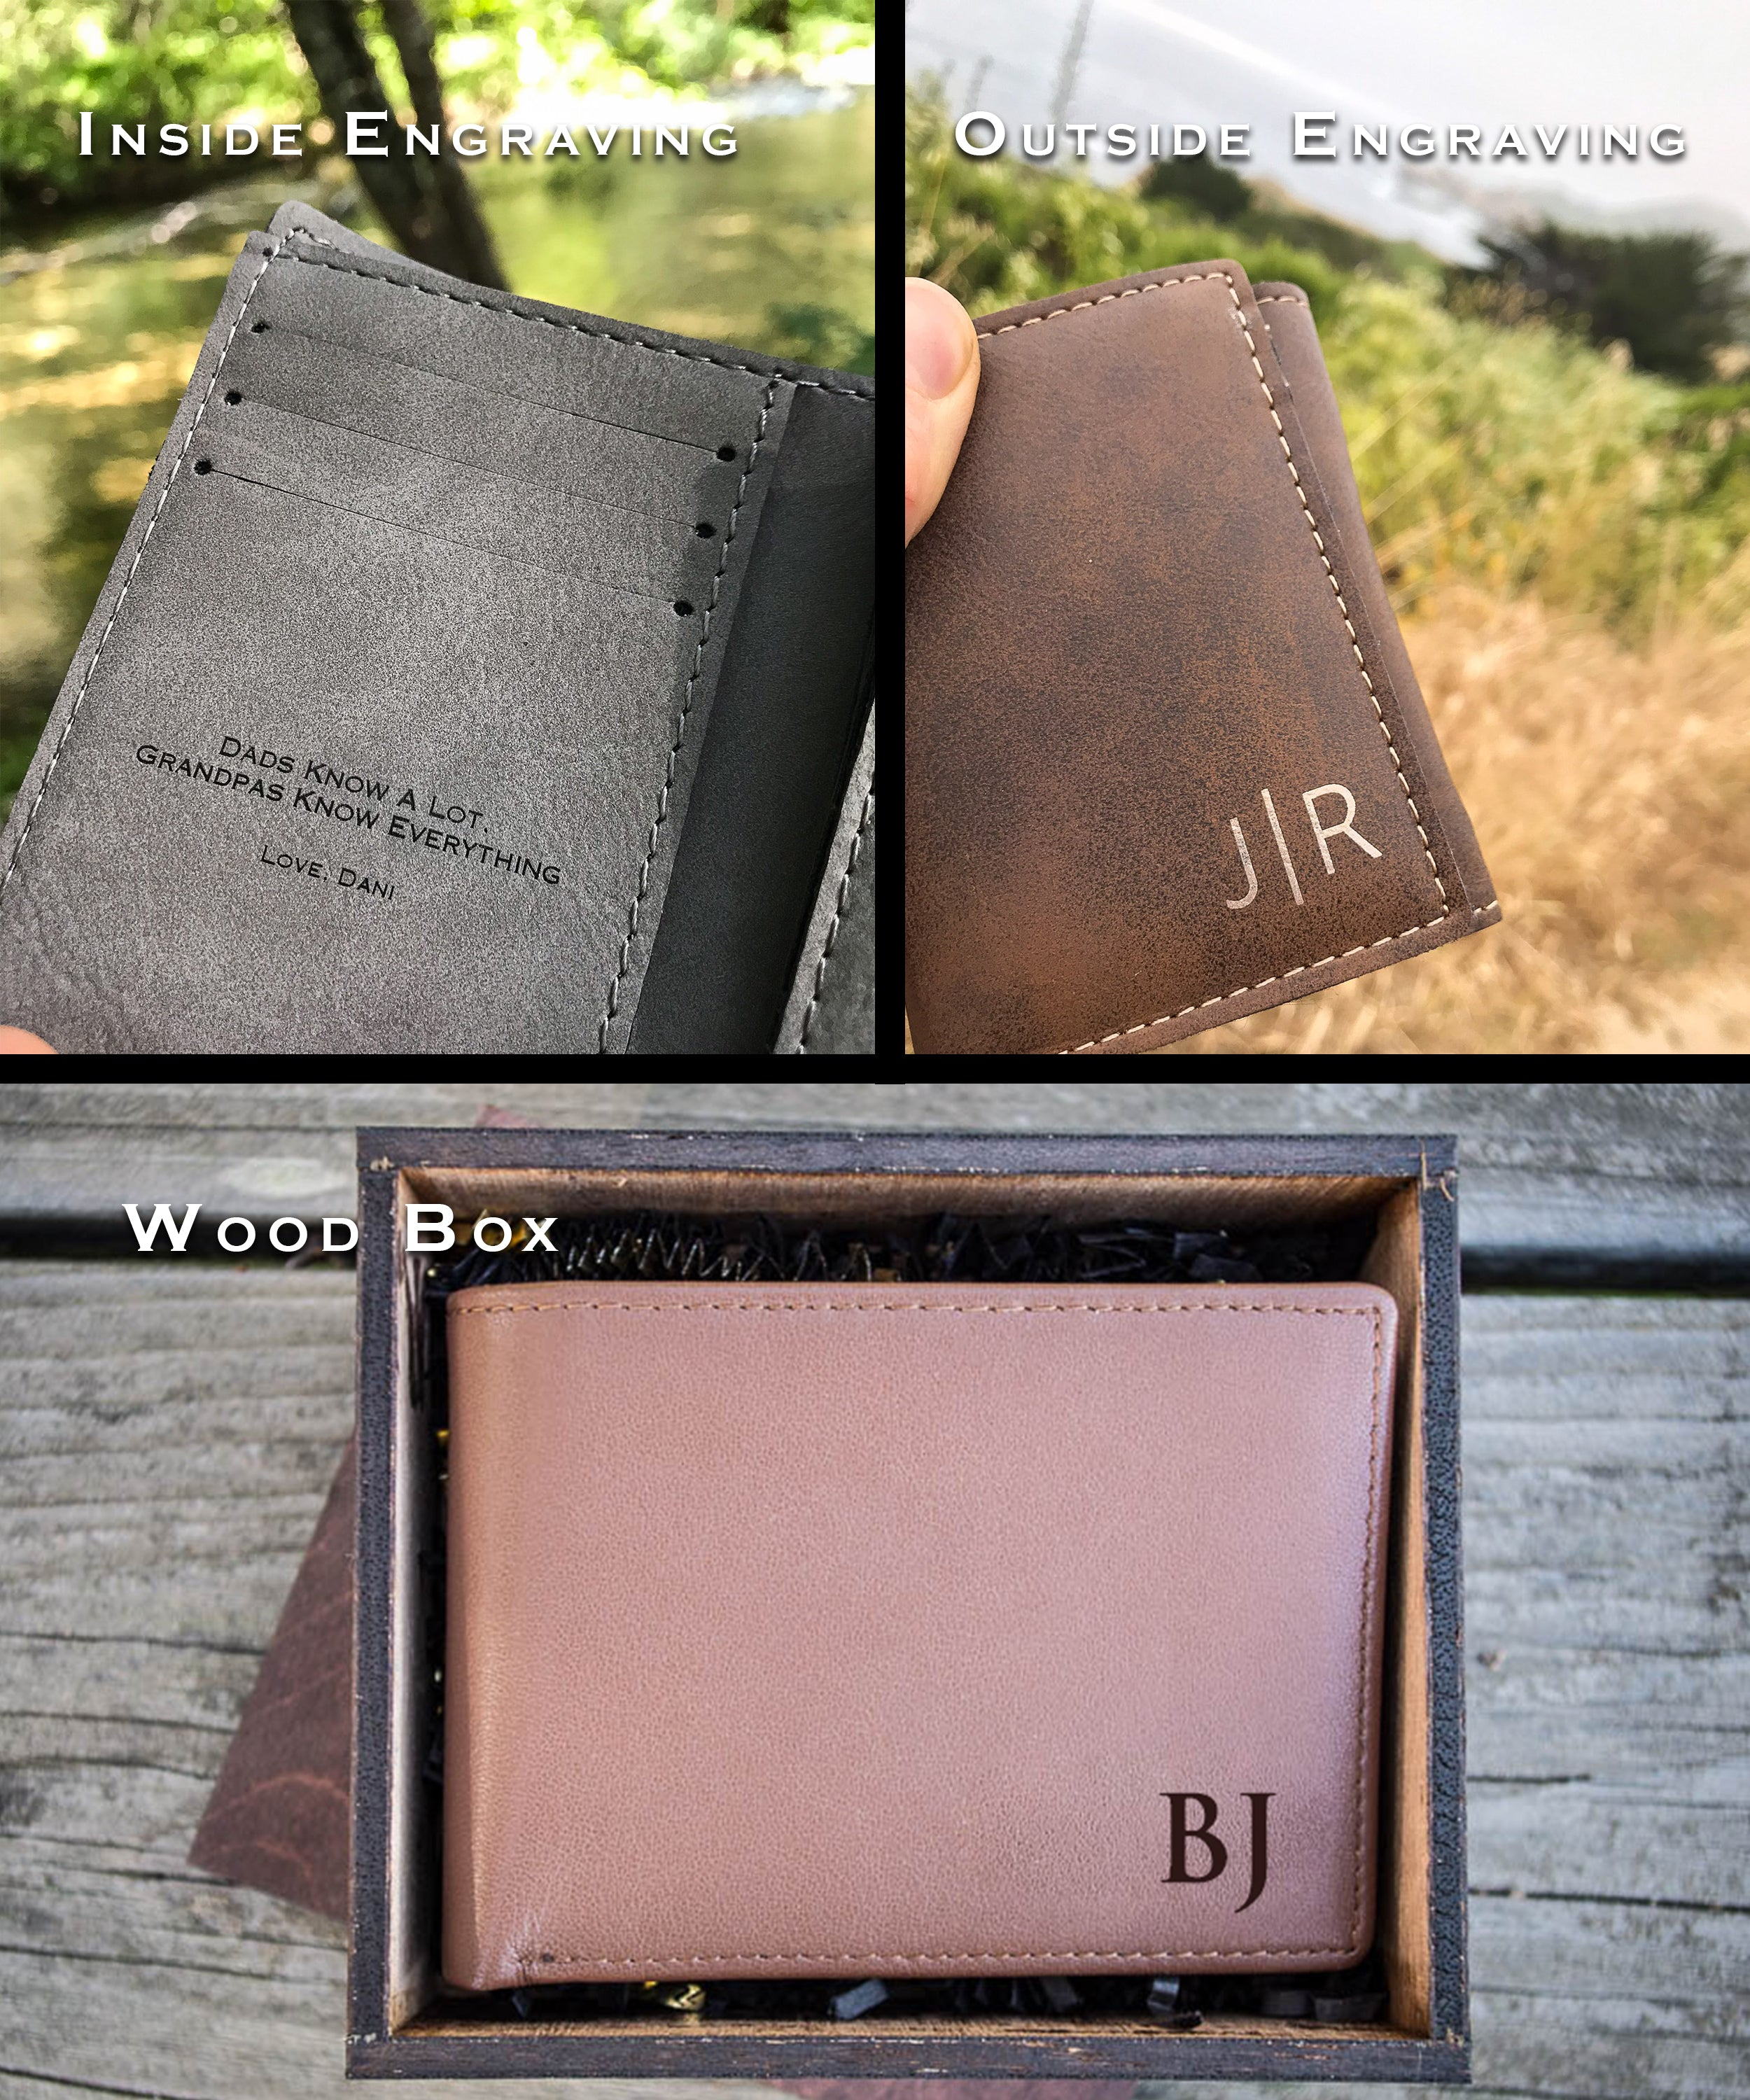 17b05fb6ac8 Custom Leather Wallets, Personalized Wallets for Men - The ...